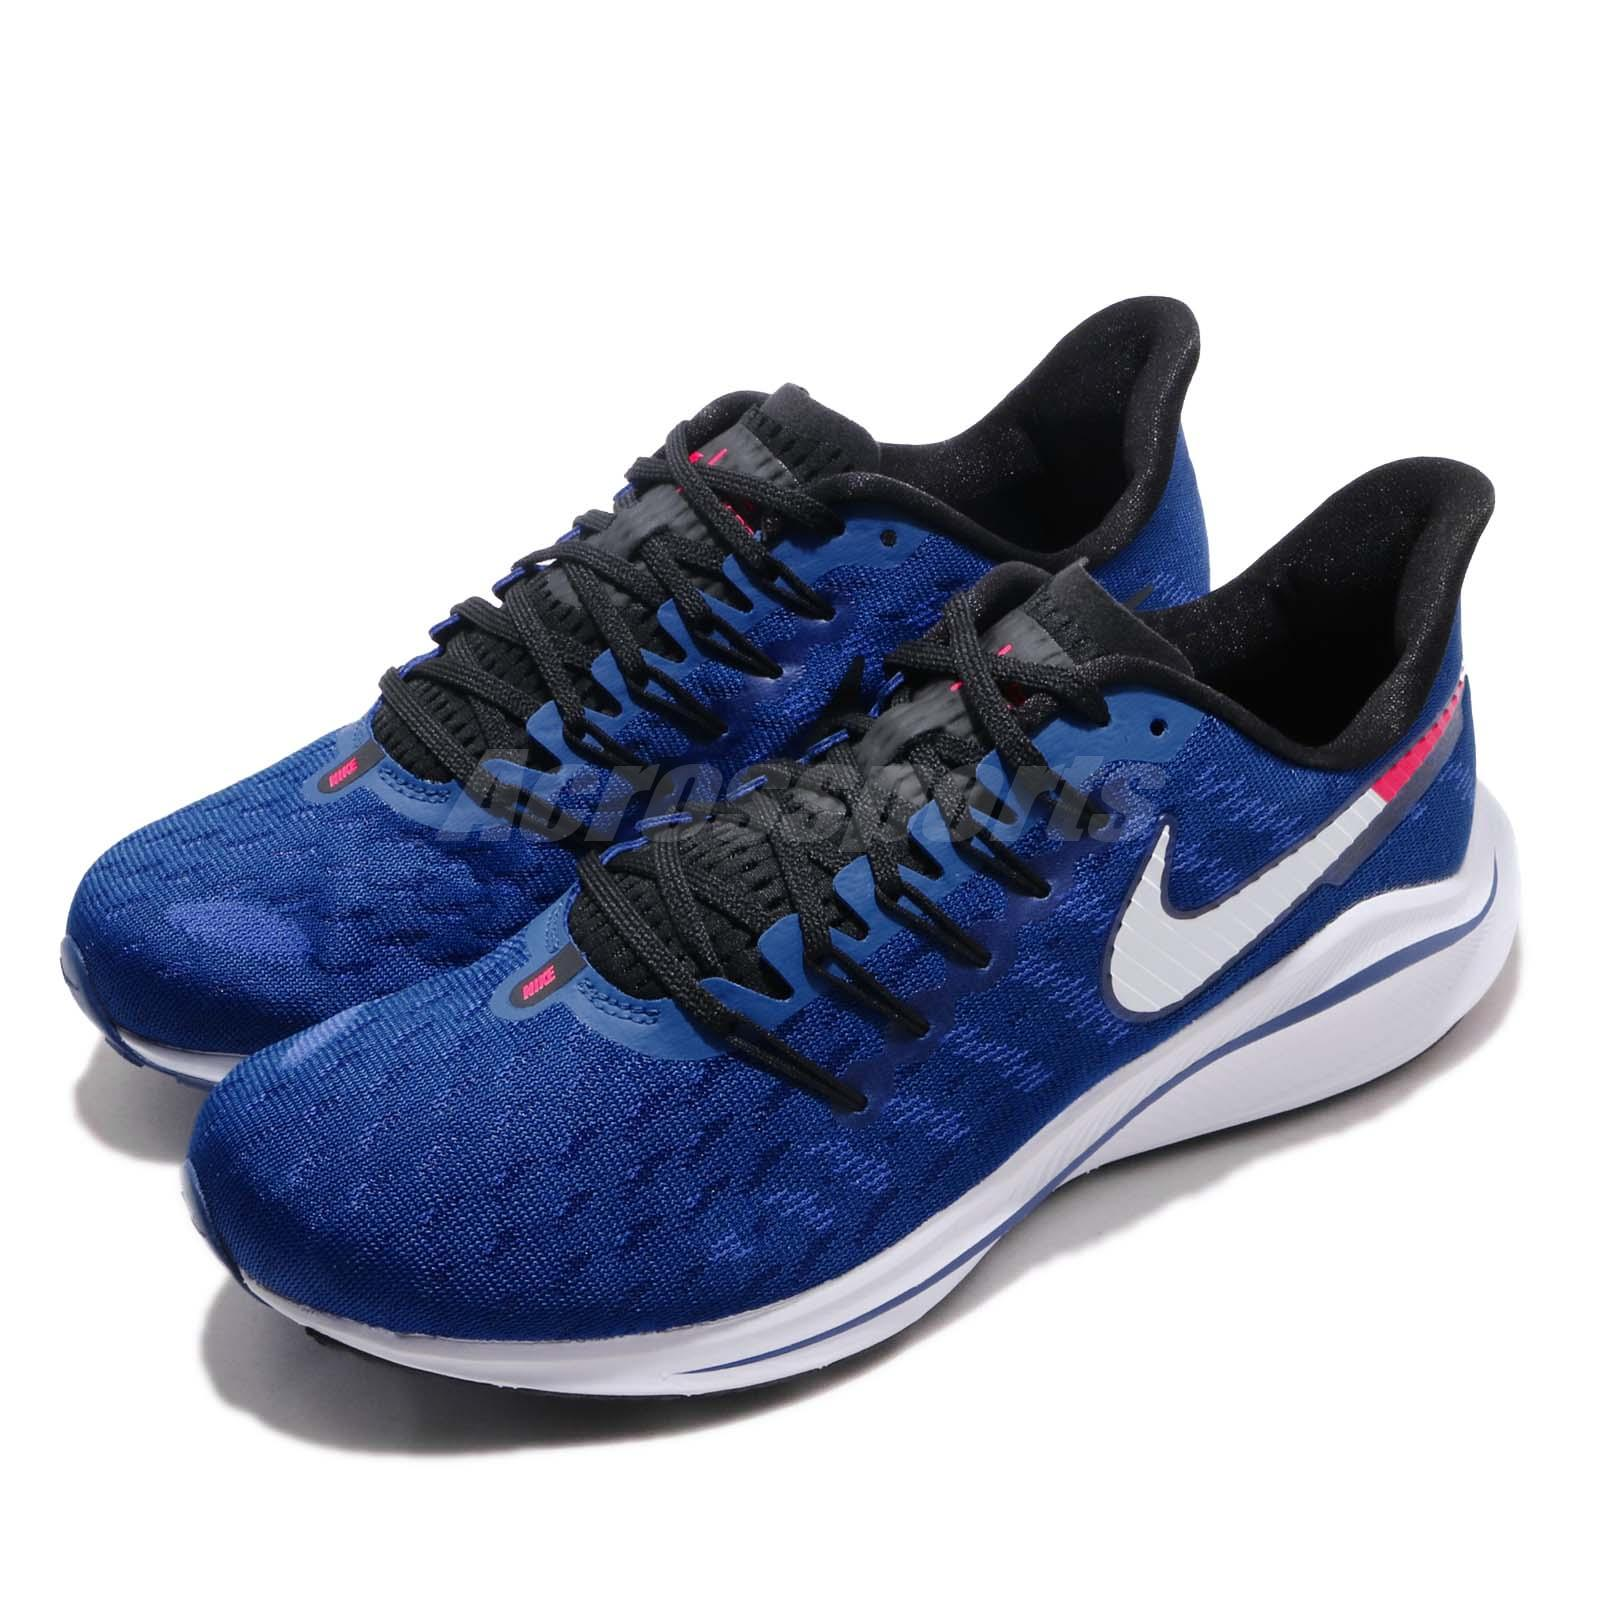 f30b2909 Details about Nike Air Zoom Vomero 14 Indigo Force Photo Blue Men Running  Shoes AH7857-400